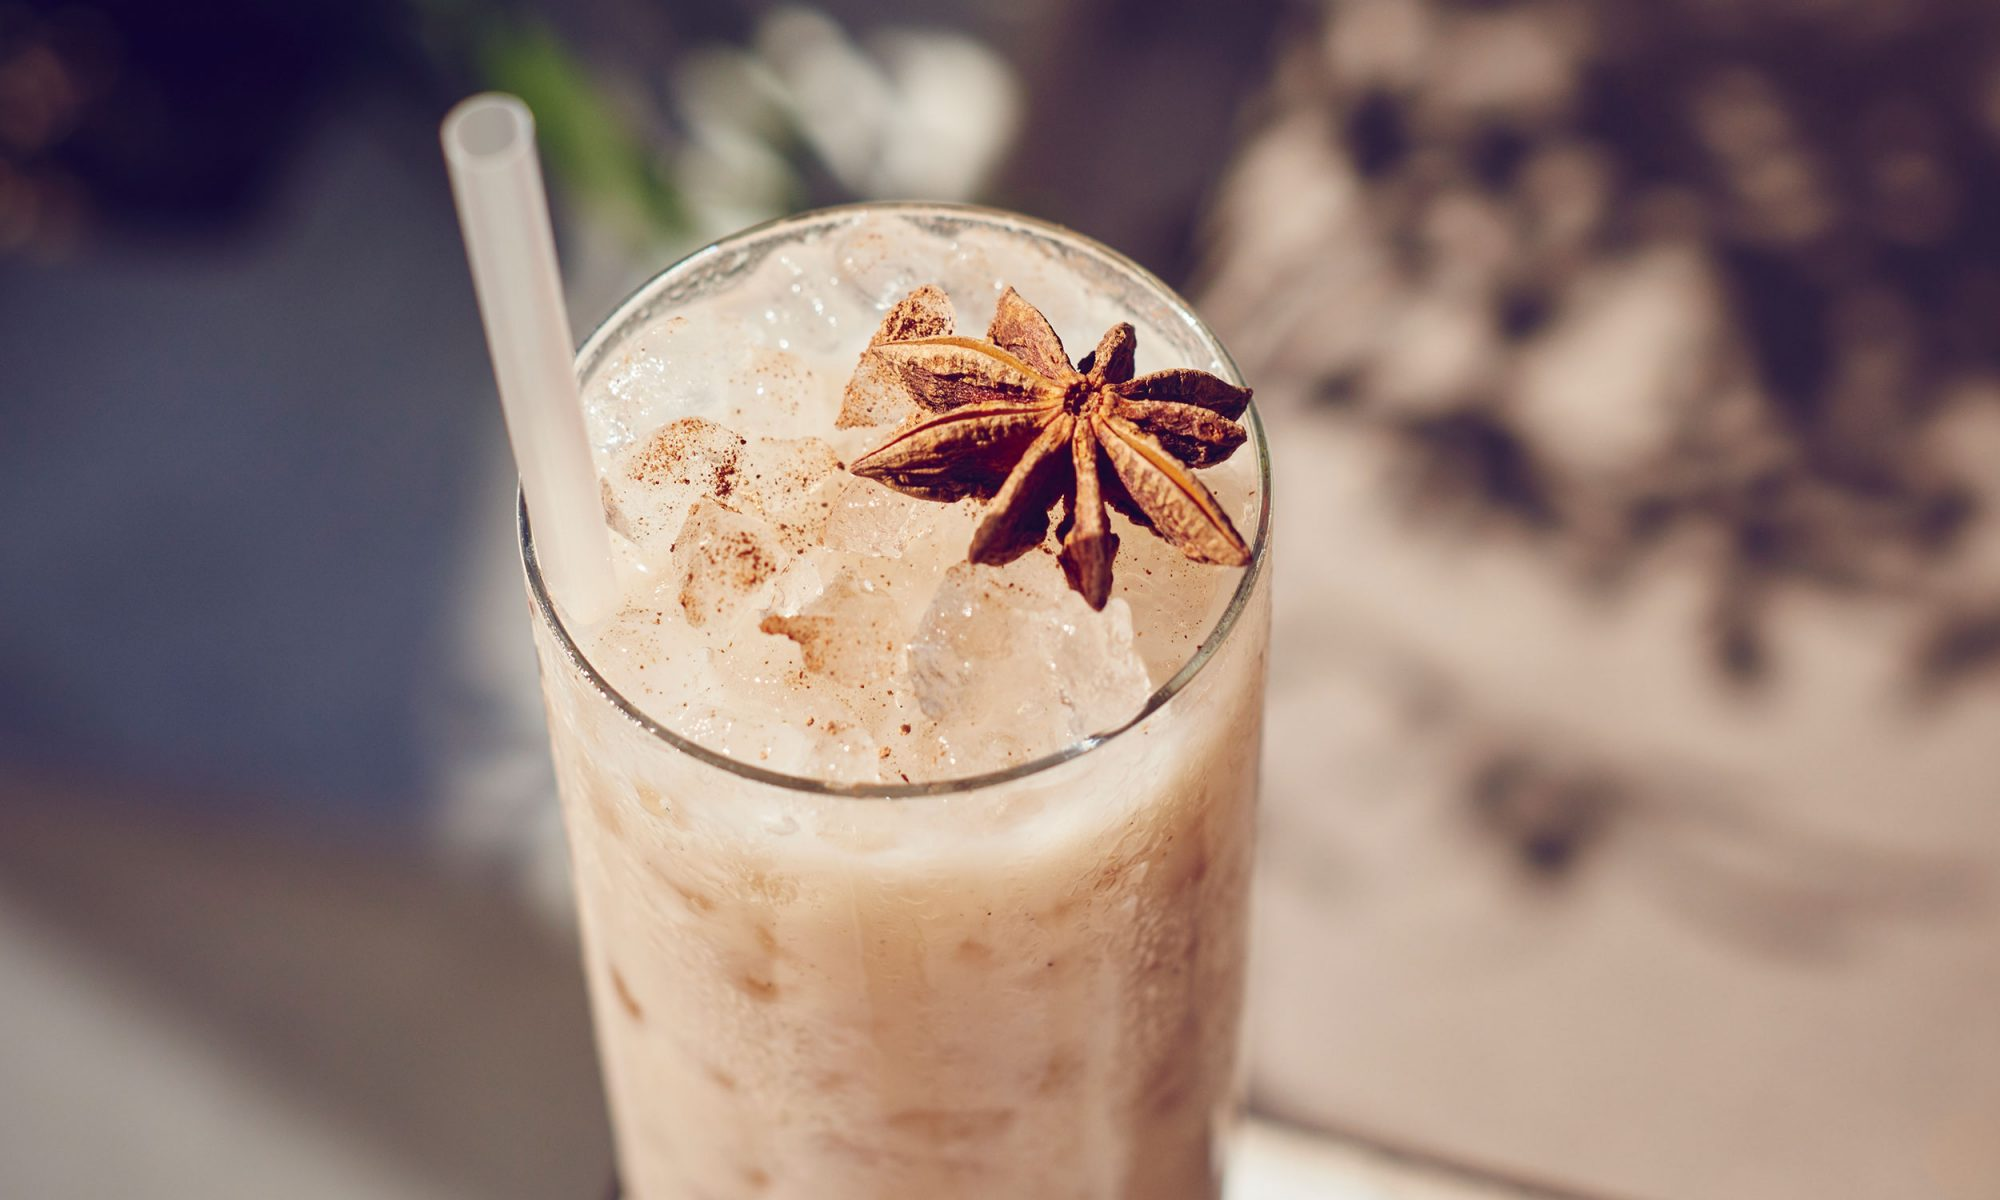 EC: This Quinoa Horchata Is a Healthy, Homemade Summer Drink